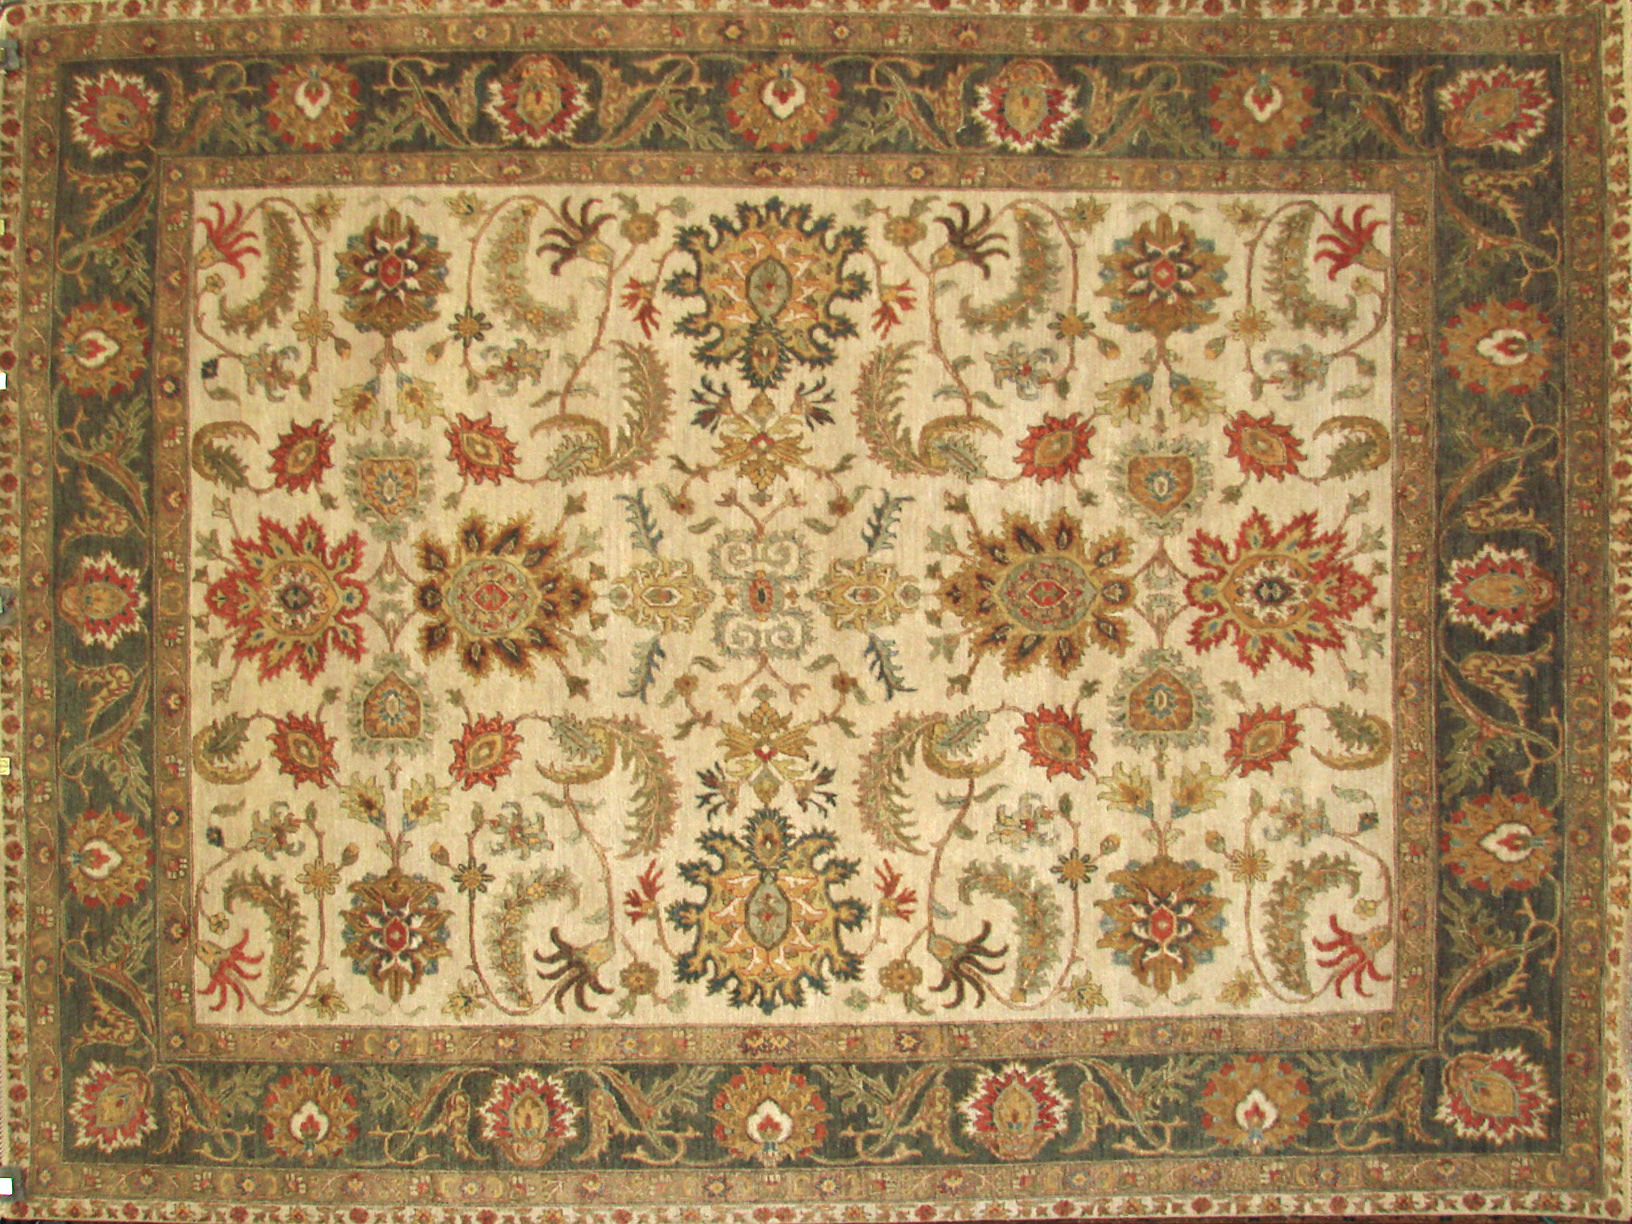 8x10 Traditional Hand Knotted Wool Area Rug - MR21200